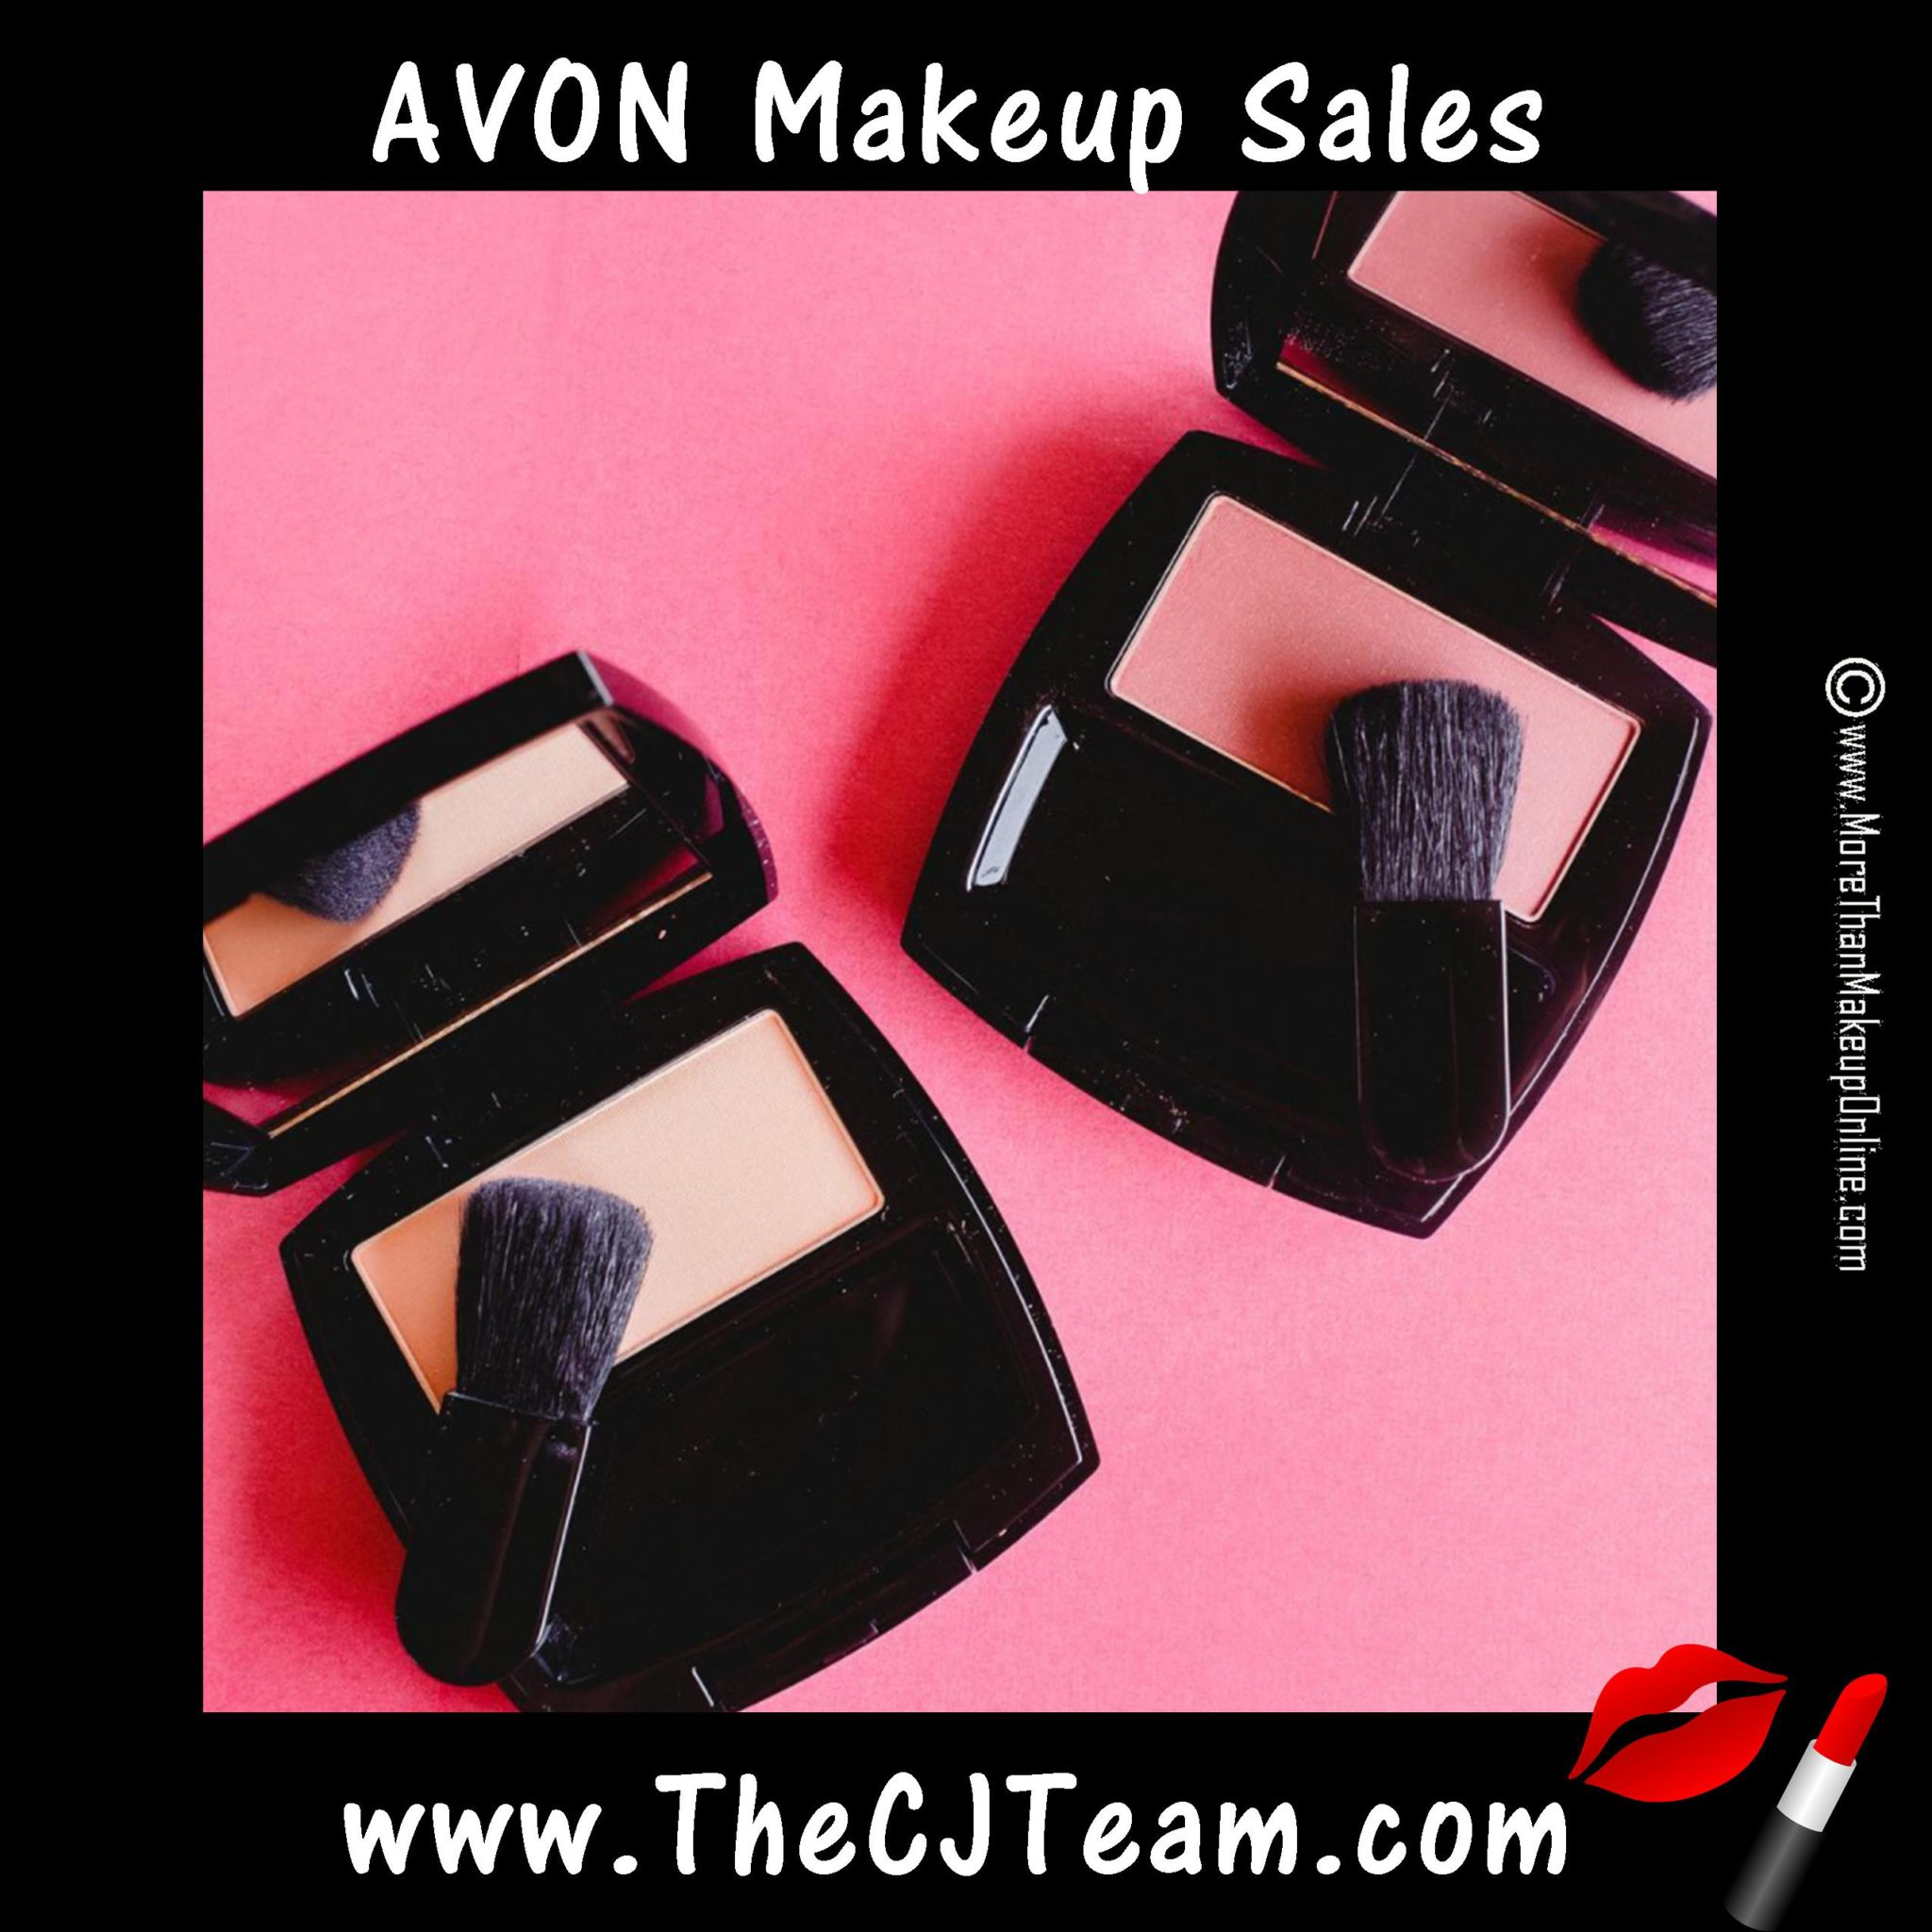 Avon Campaign Makeup Sales More Than